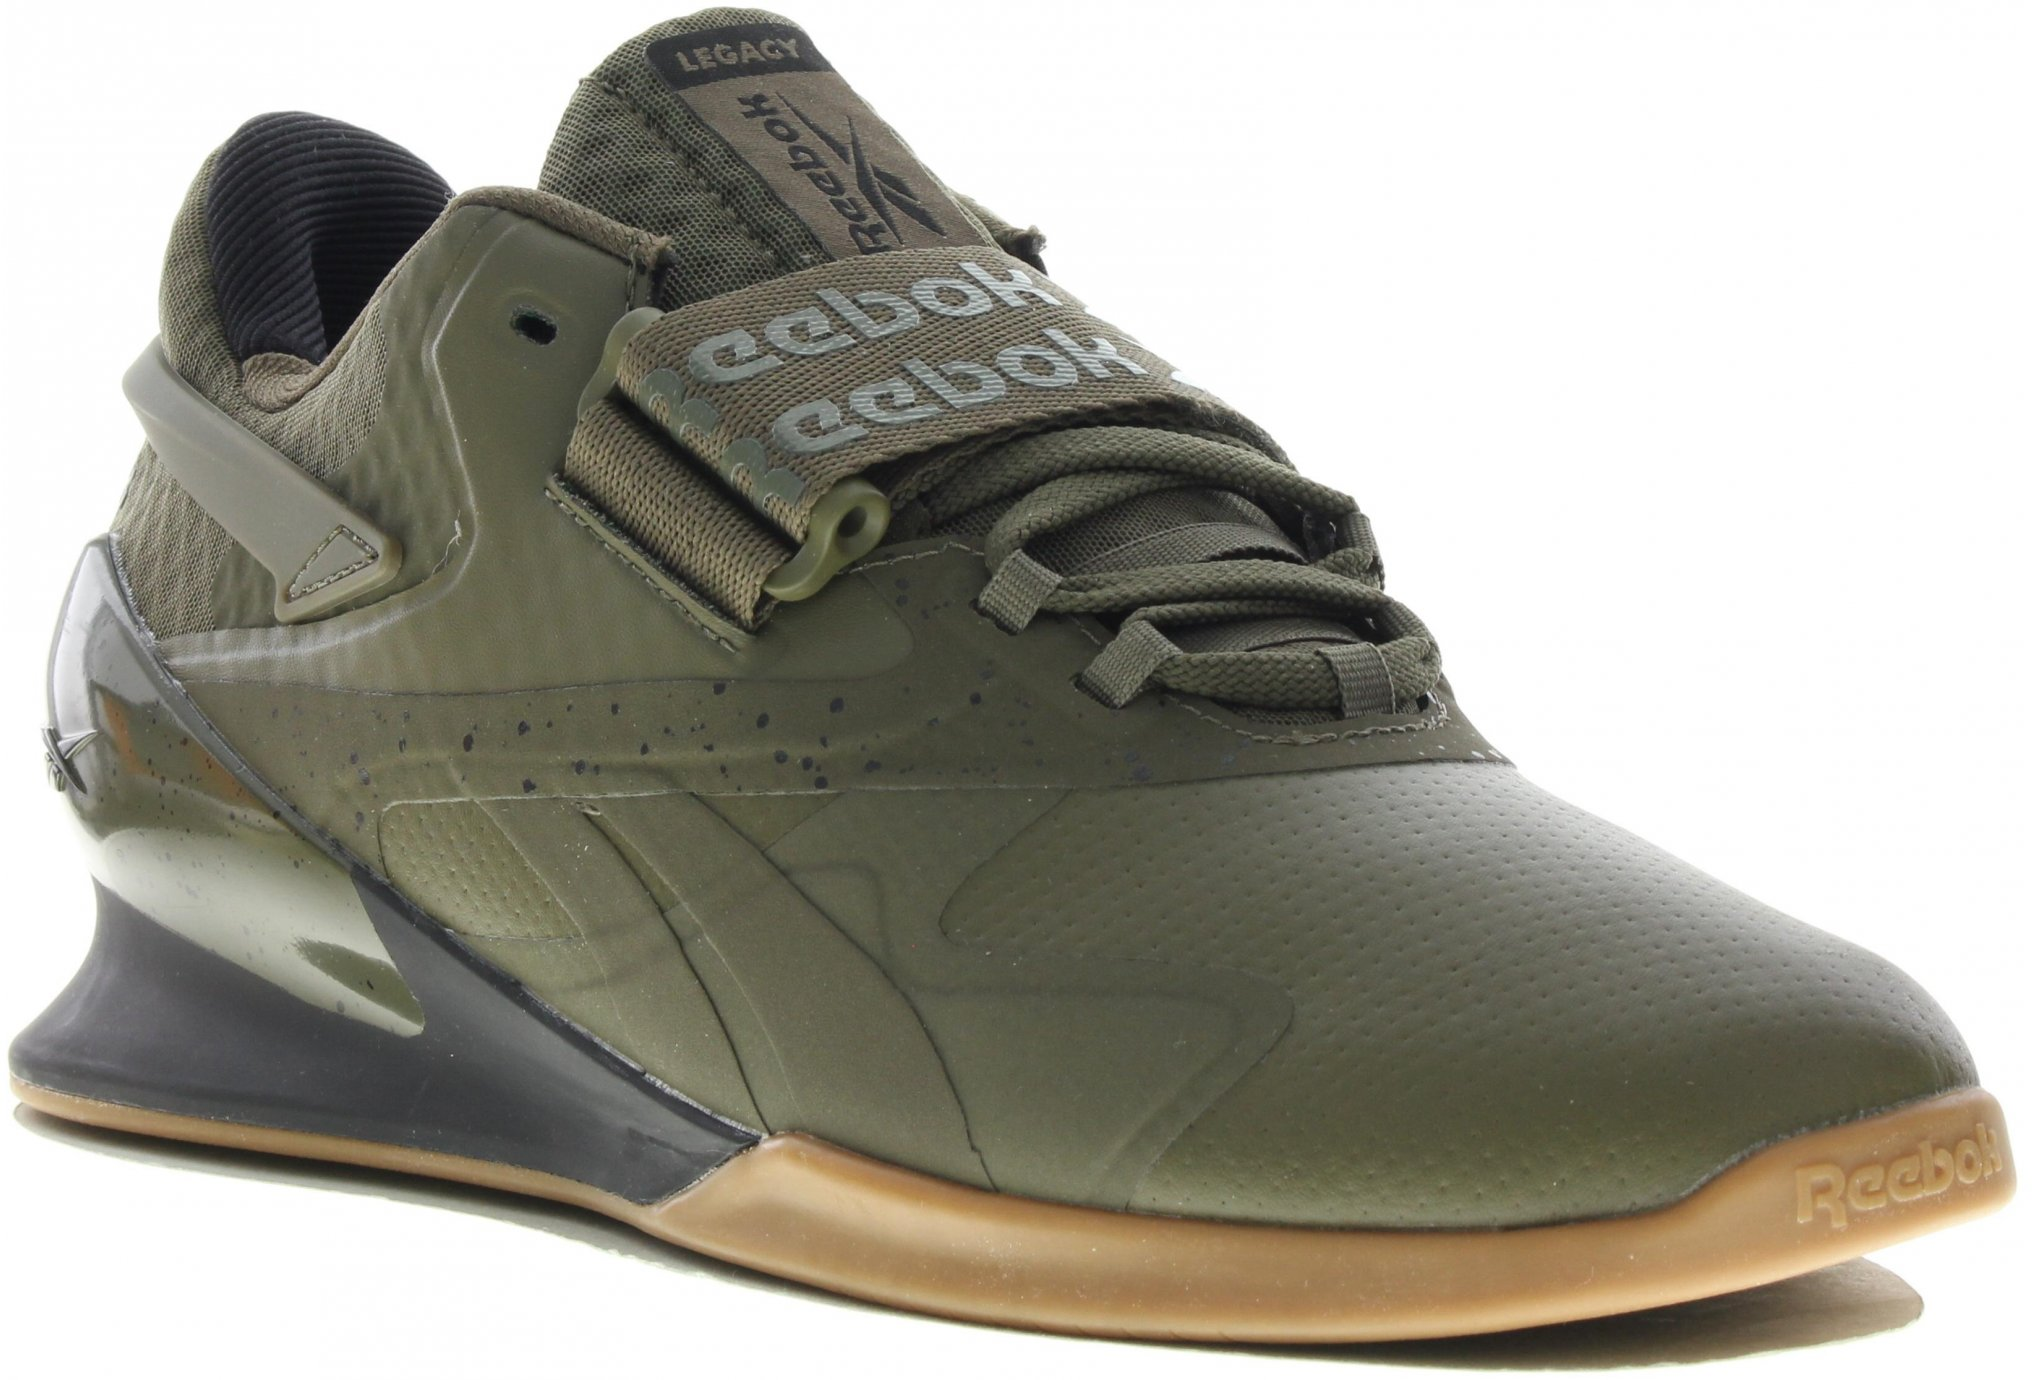 Reebok Legacy Lifter II M Chaussures homme